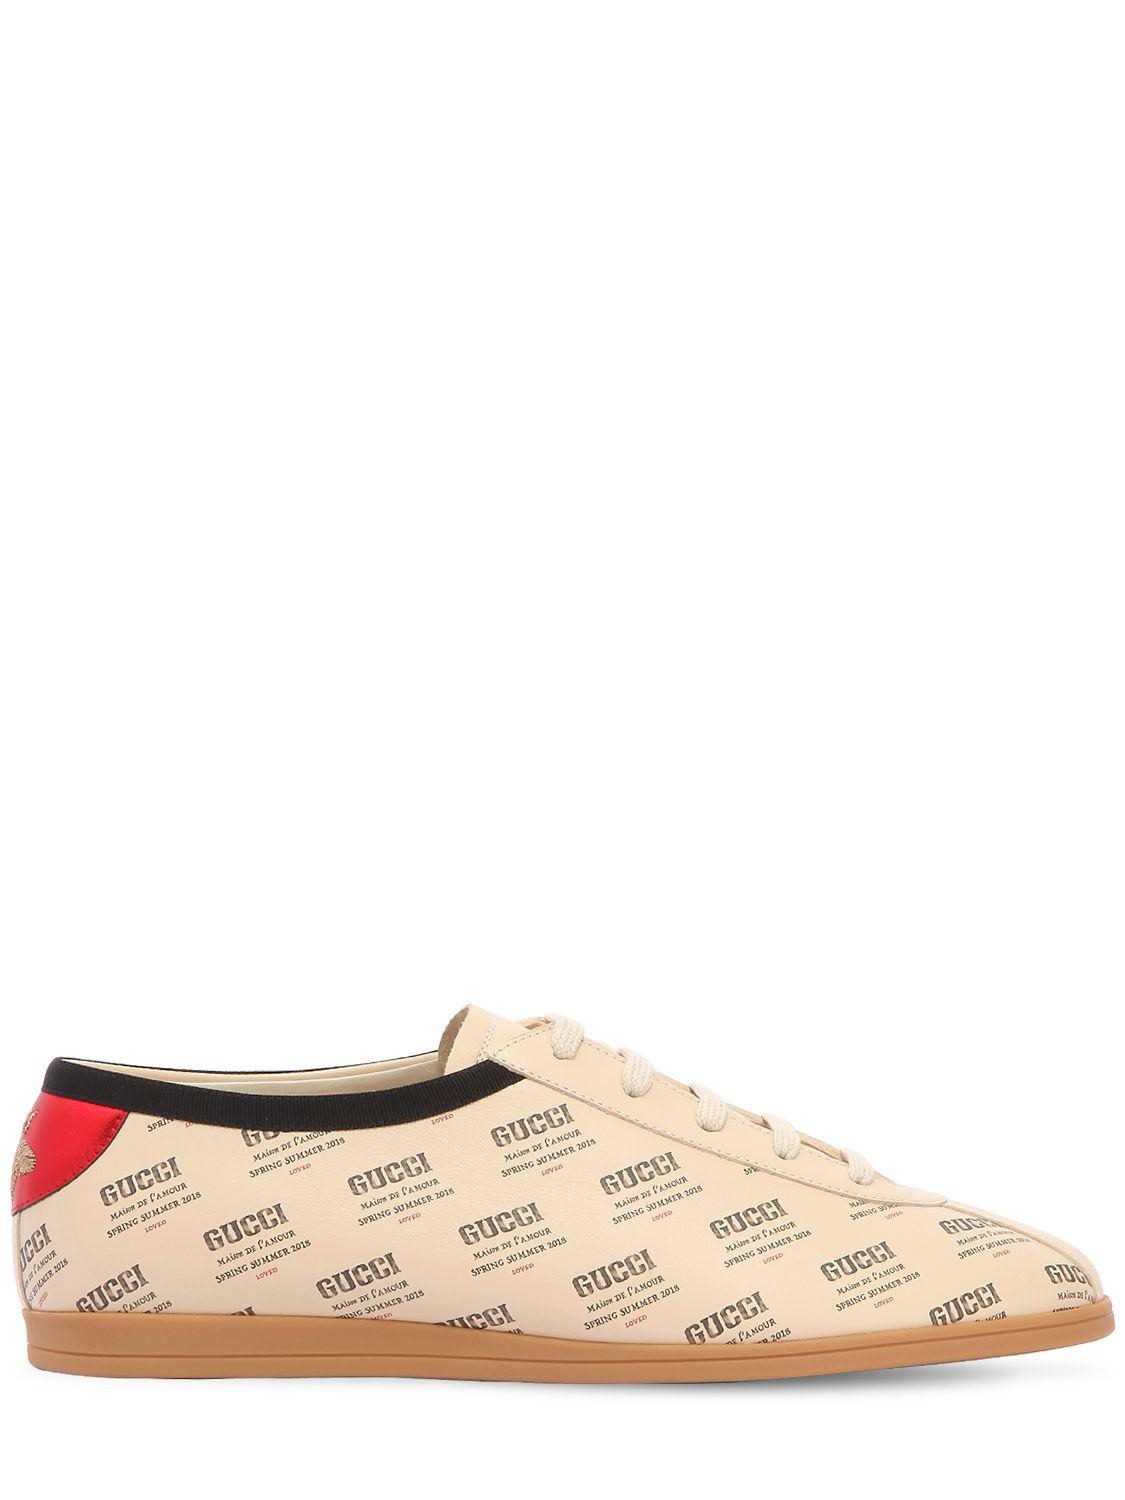 RQ8K315DqI FALACER LOGO PRINTED LEATHER SNEAKERS p0VhbeV